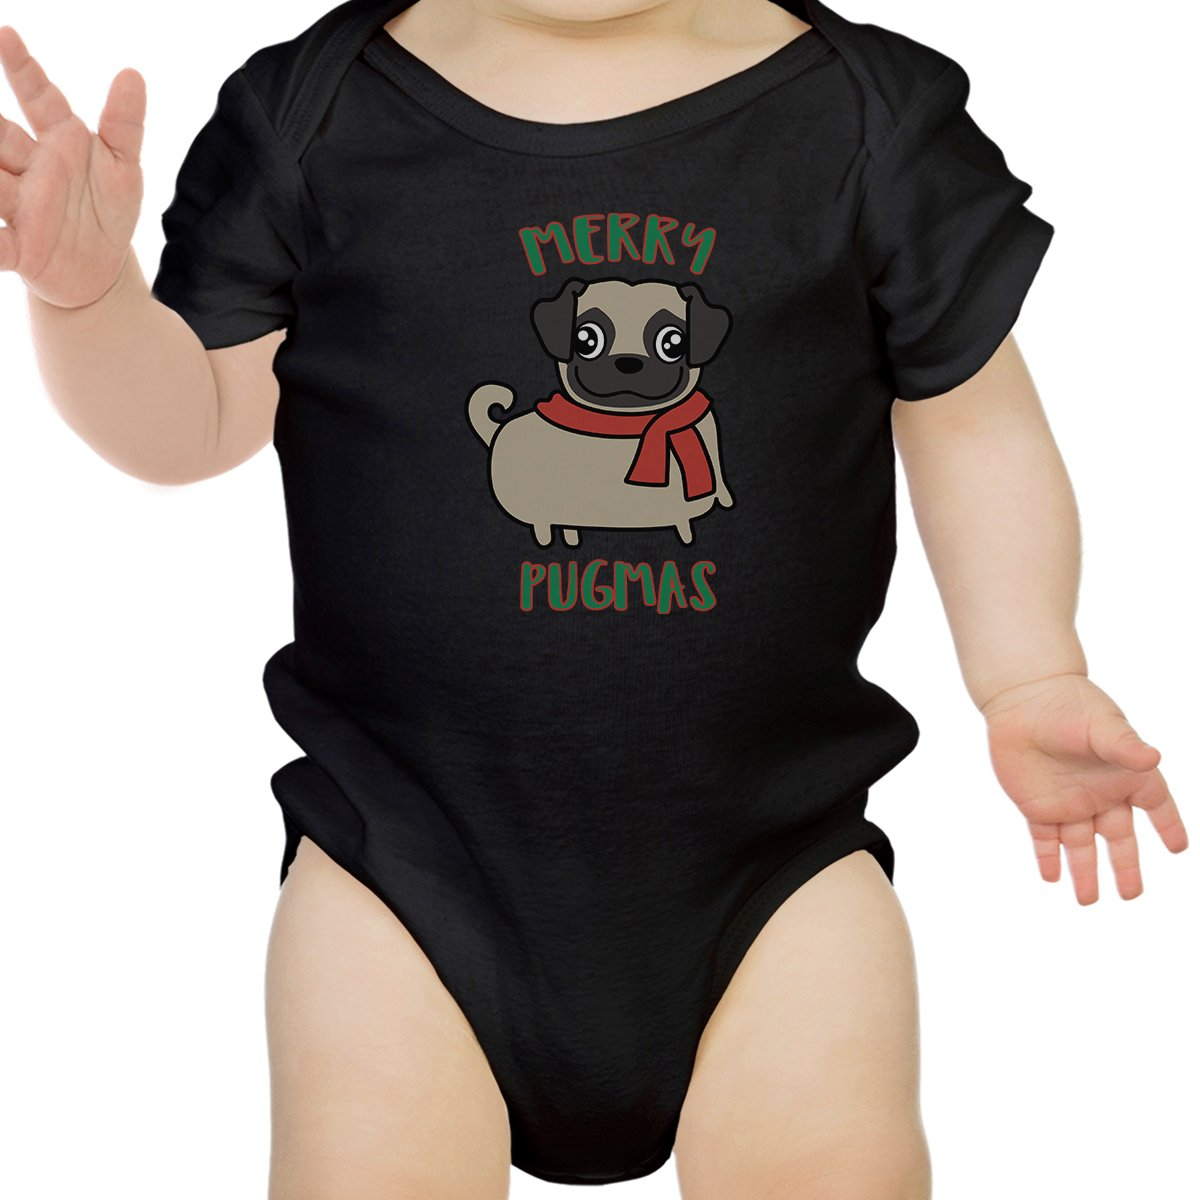 0a4137346 Merry Pugmas Pug Baby Black Bodysuit - 365 IN LOVE - Matching Gifts ...